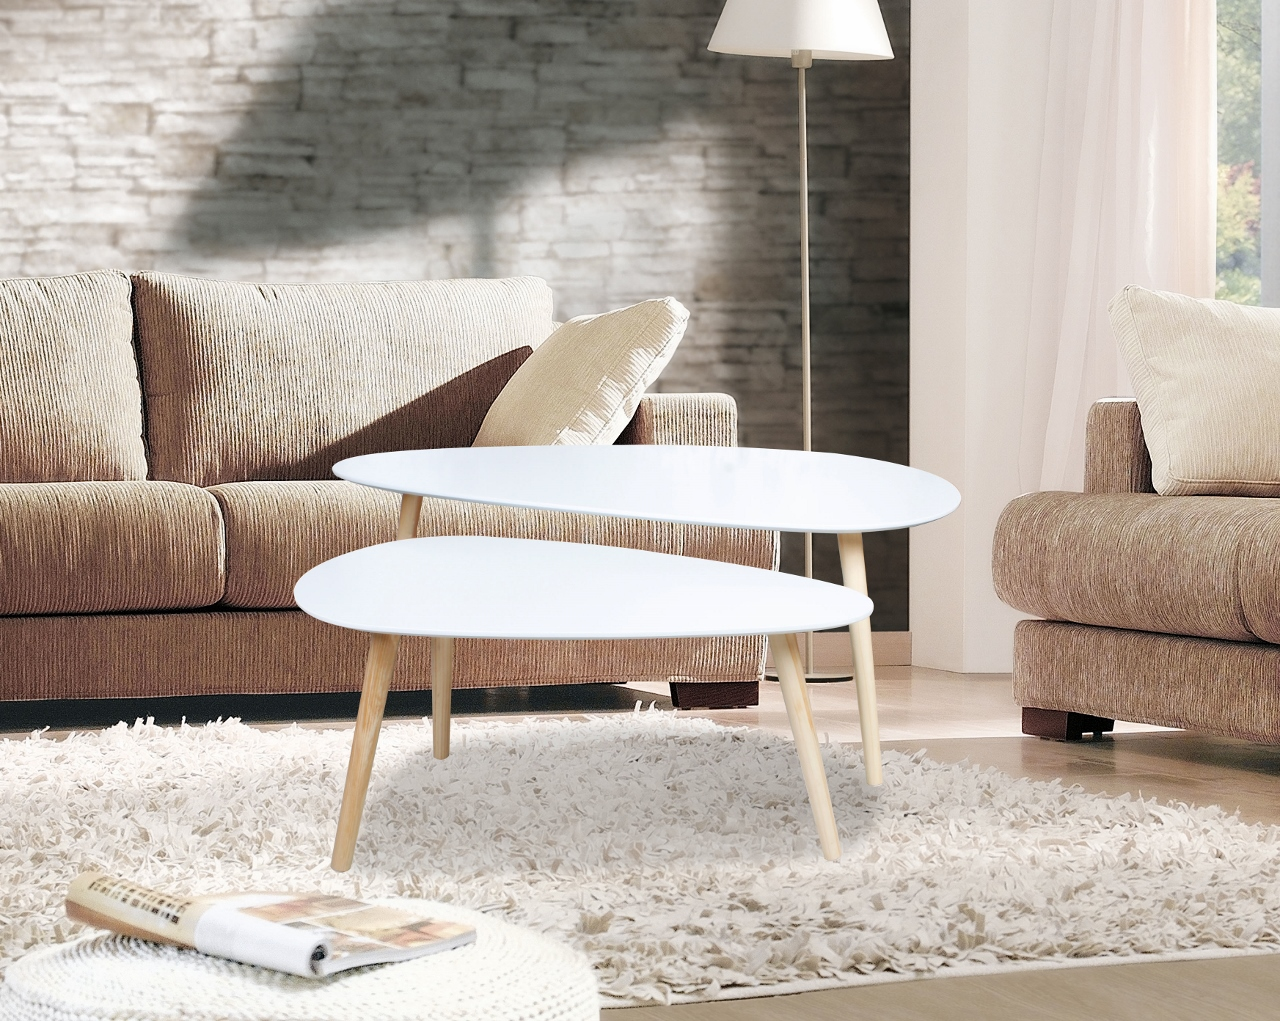 HappyHome Solid wood Nordic coffee table small creative apartment short tableeasy to install living room modern coffee tableHappyHome Solid wood Nordic coffee table small creative apartment short tableeasy to install living room modern coffee table